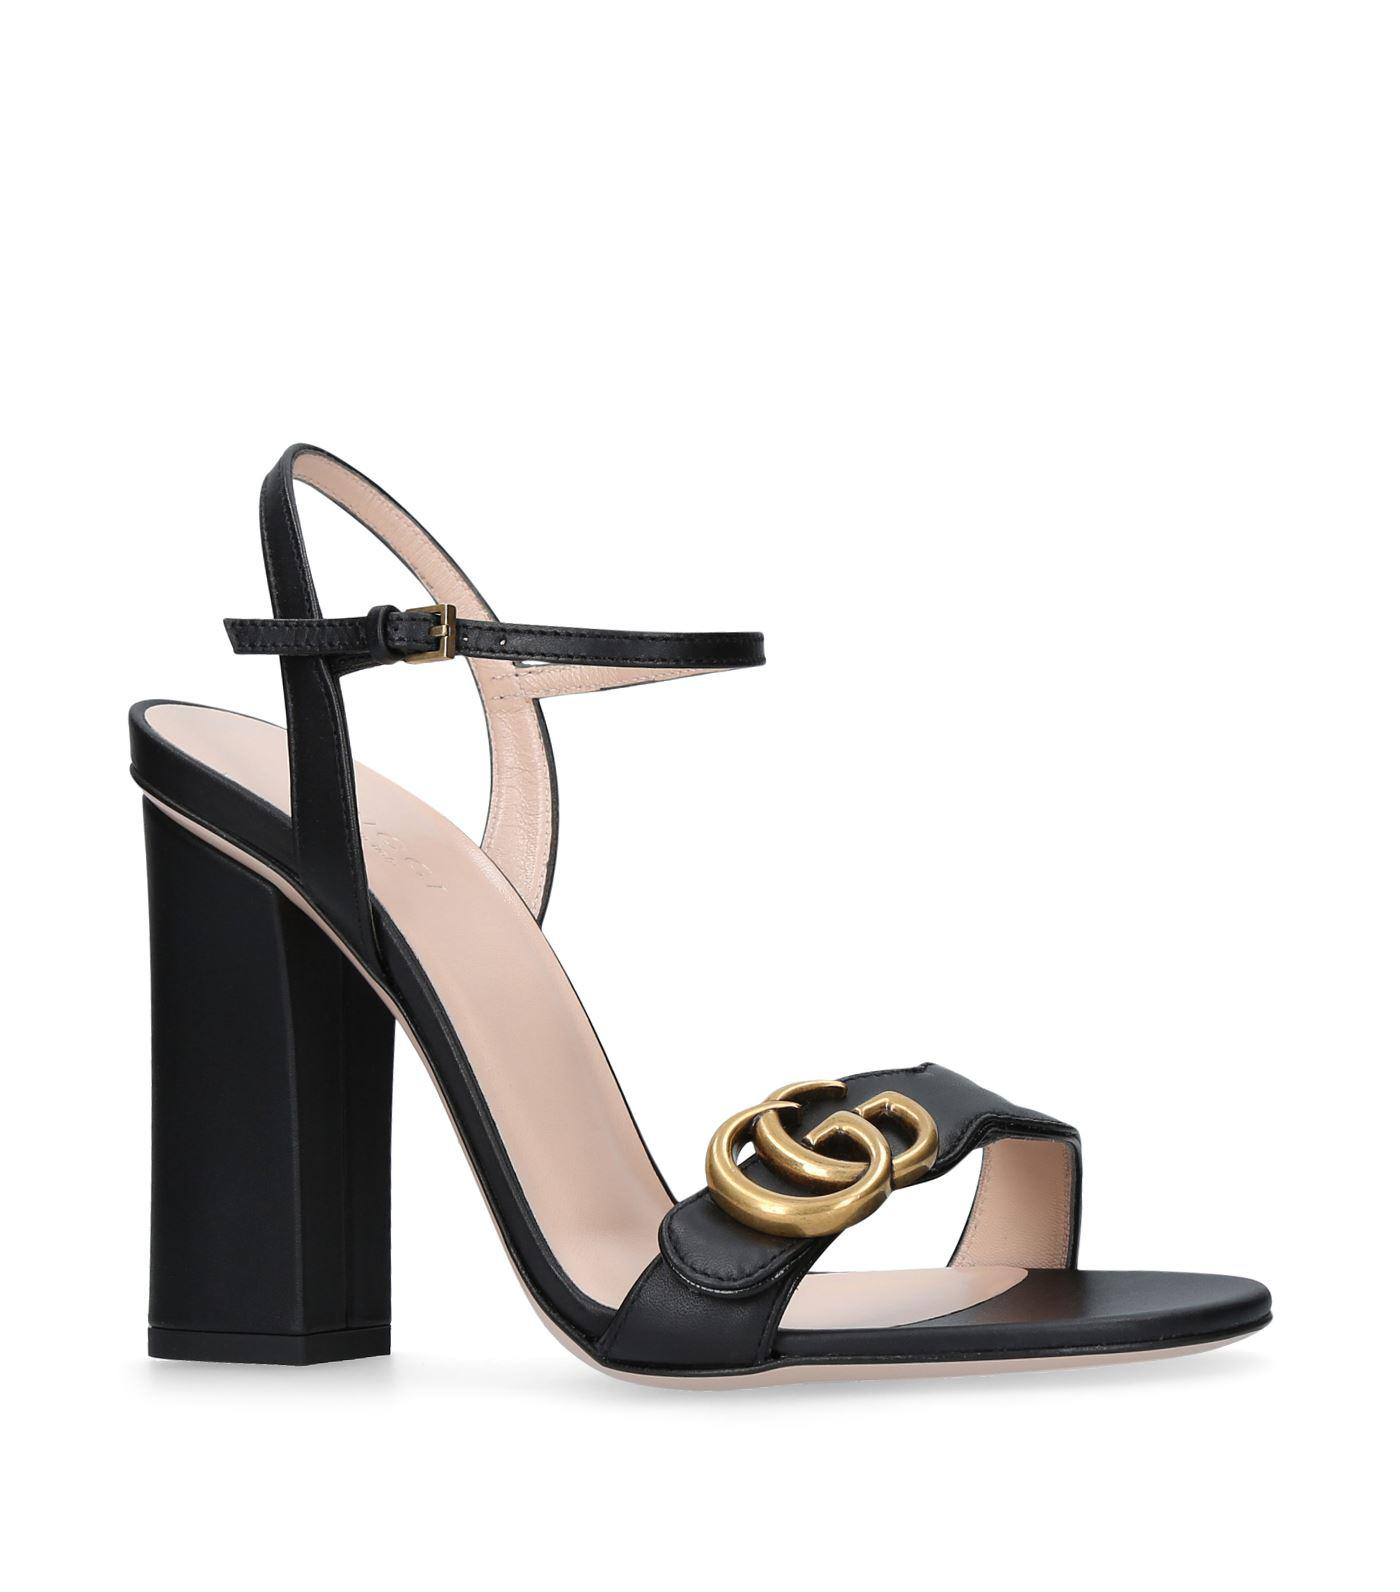 99f7a3cf9 Gucci Marmont Sandals 105 in Black - Lyst